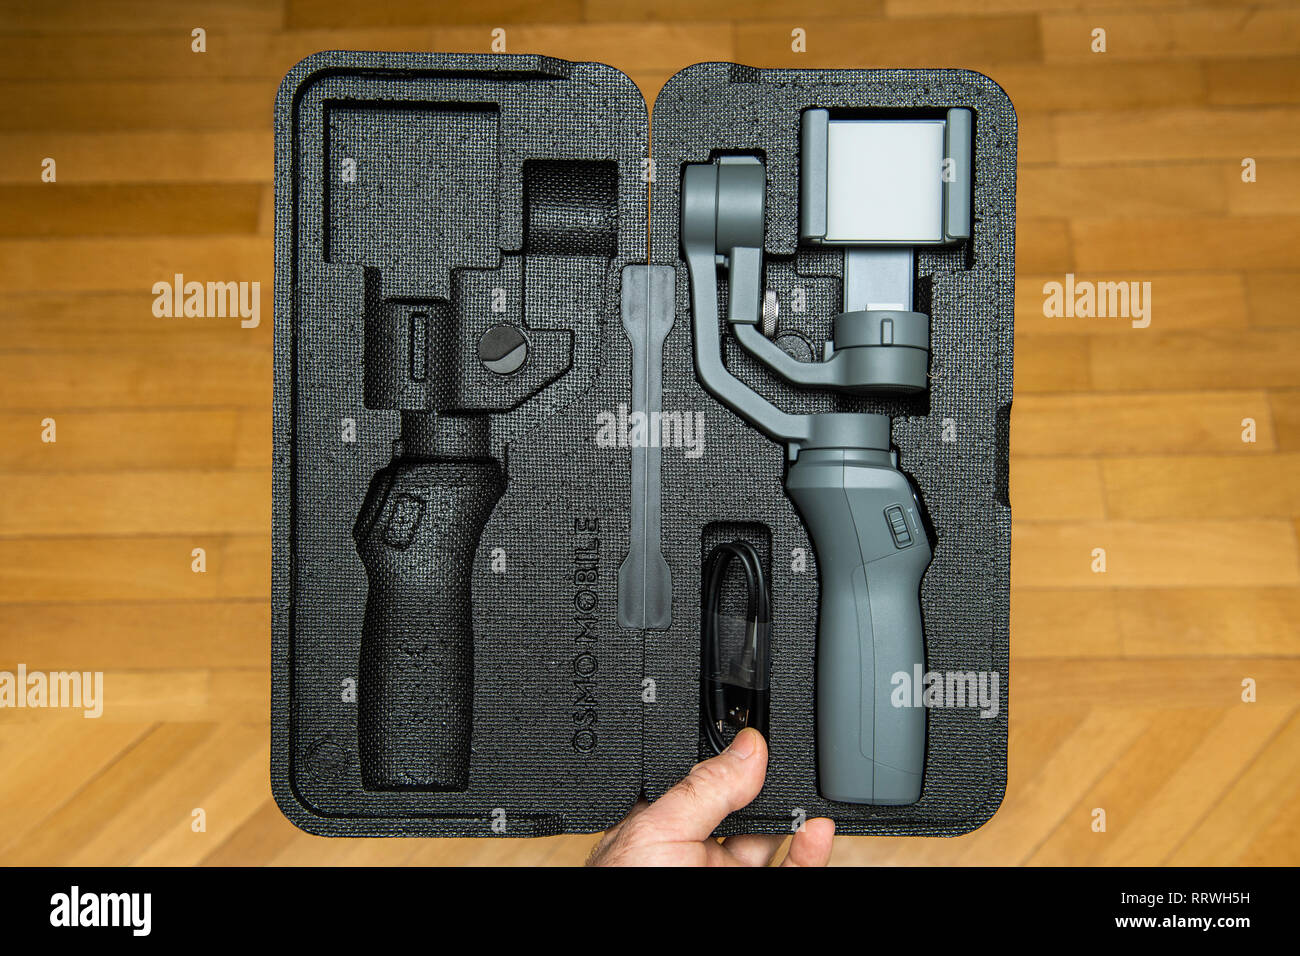 PARIS, FRANCE - NOV 22, 2018: Man unboxing new DJI Osmo Mobile 2 Smartphone Gimbal manufactured by the SZ DJI Technology Co., Ltd company from the foam packaging floor background - Stock Image